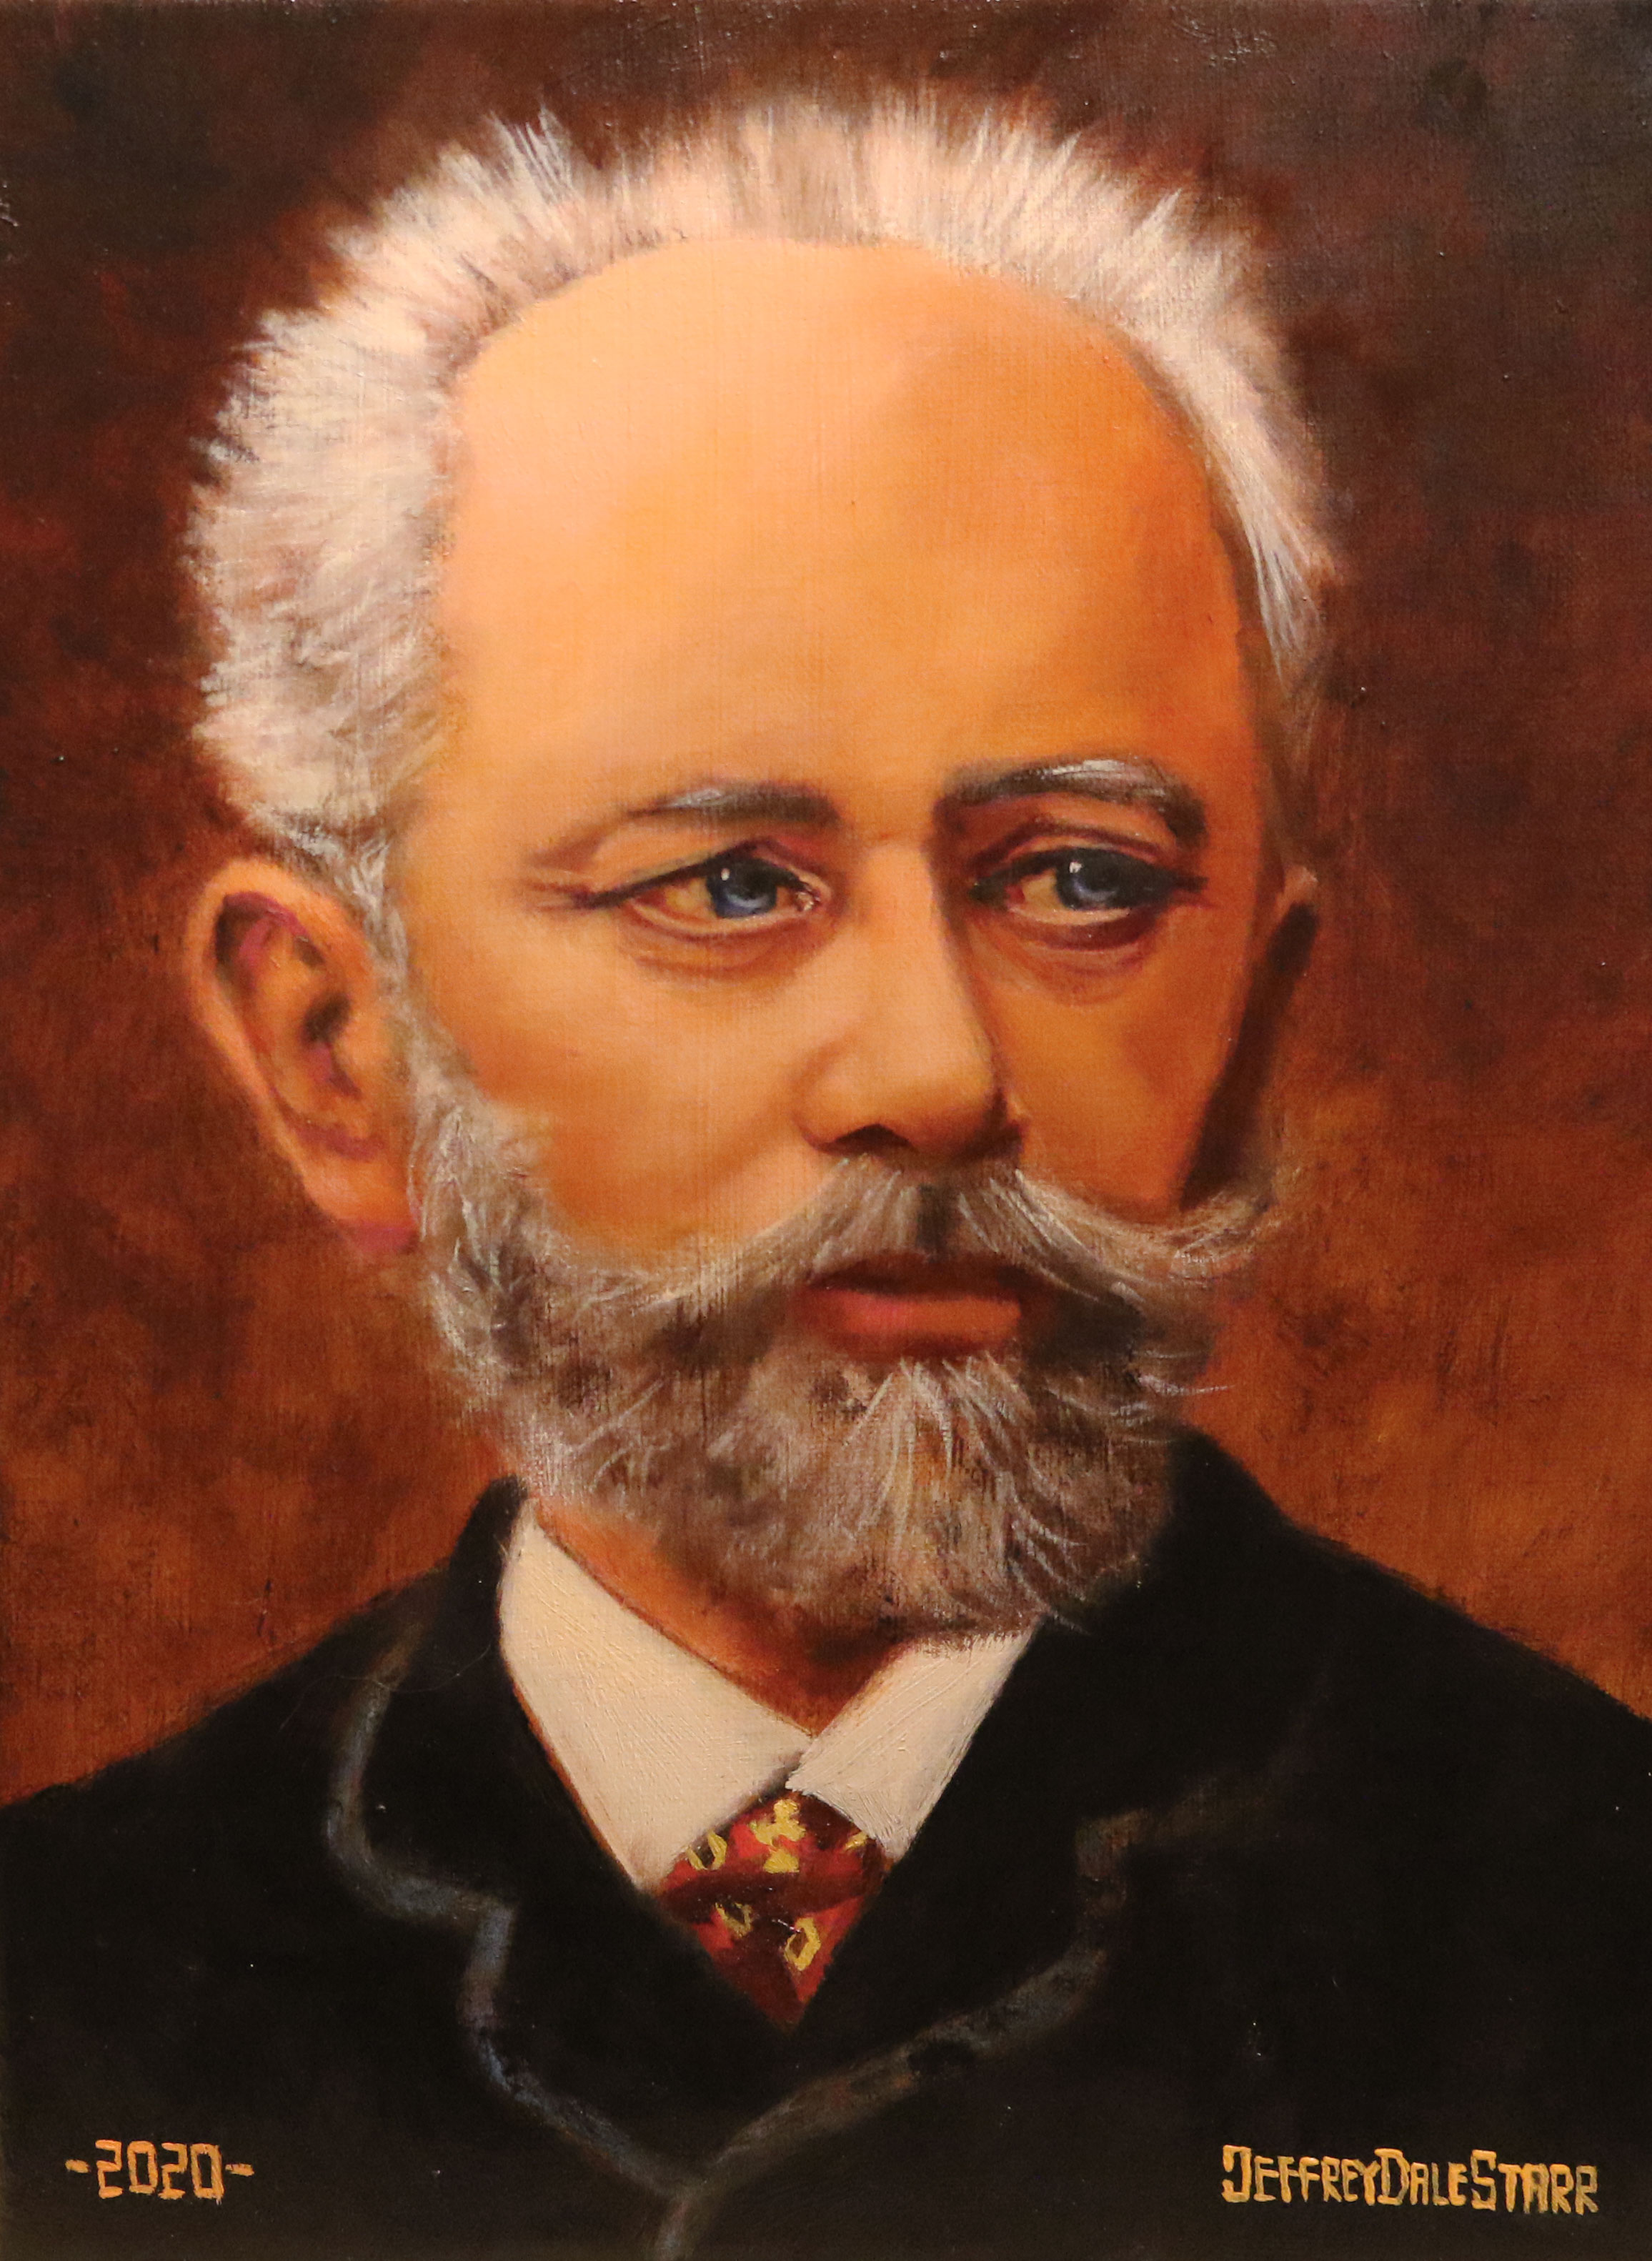 oil painting of pyotr tchaikovsky classical composer russia by american artist jeffrey dale starr